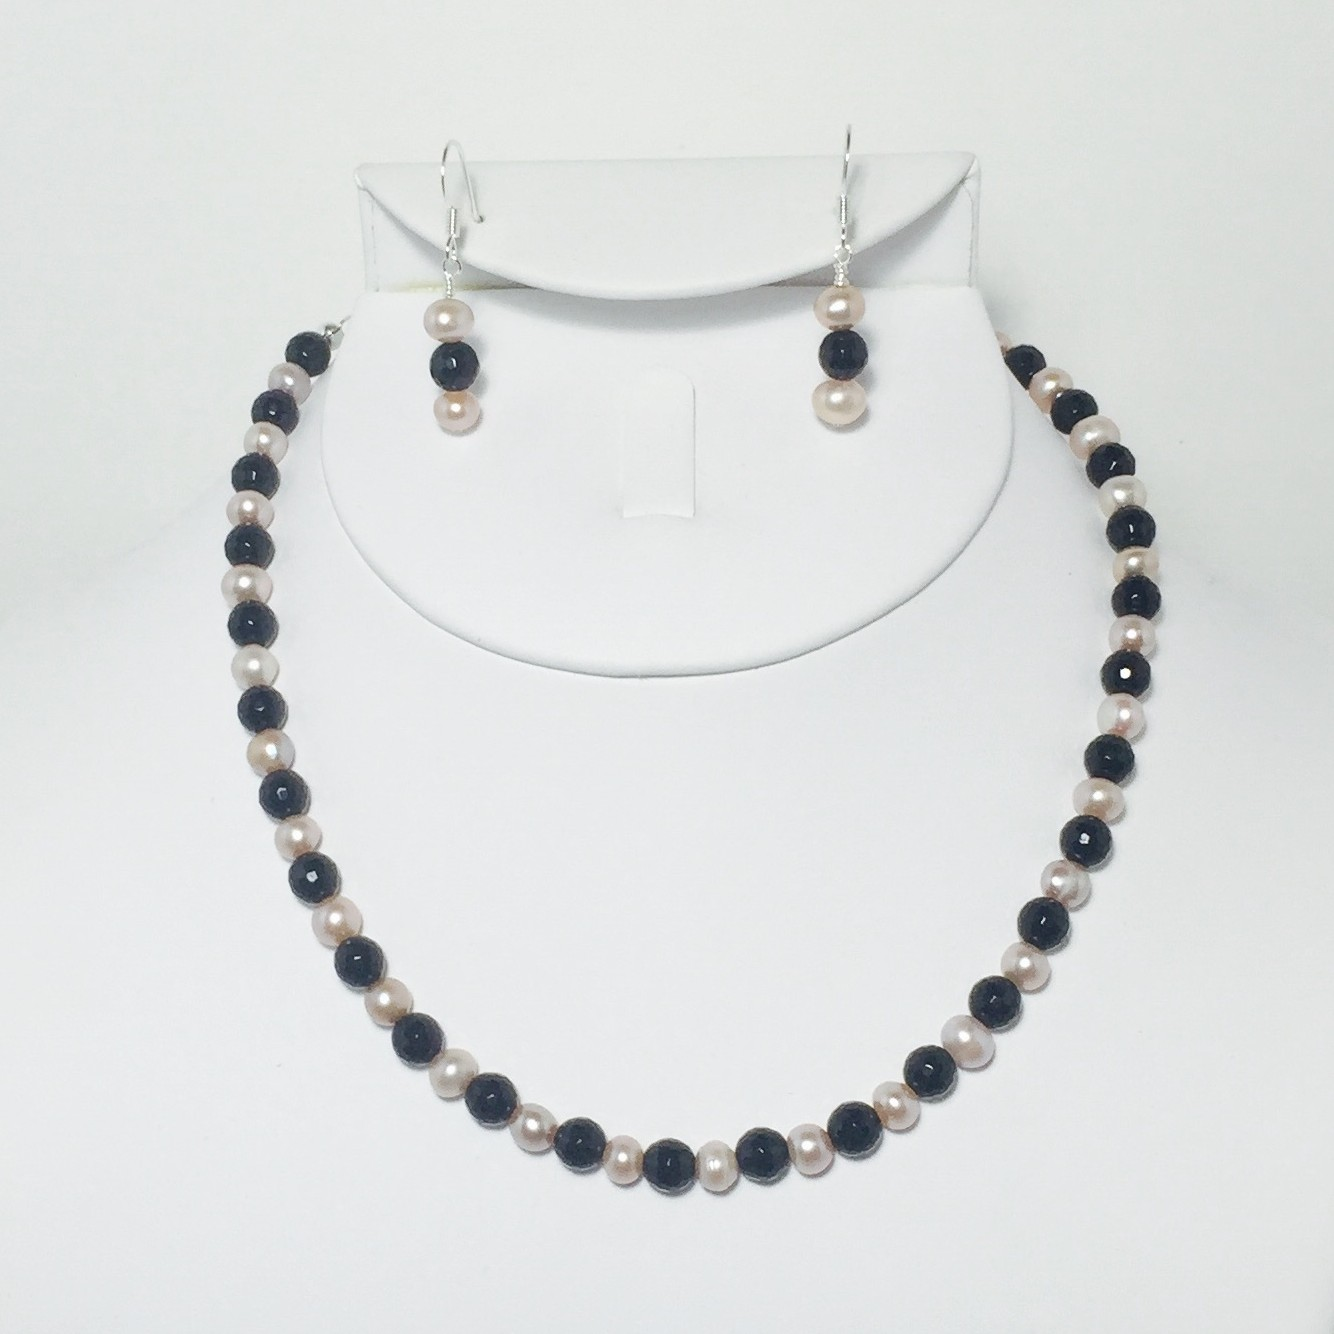 Pearl and Onyx Necklace and Earrings Set